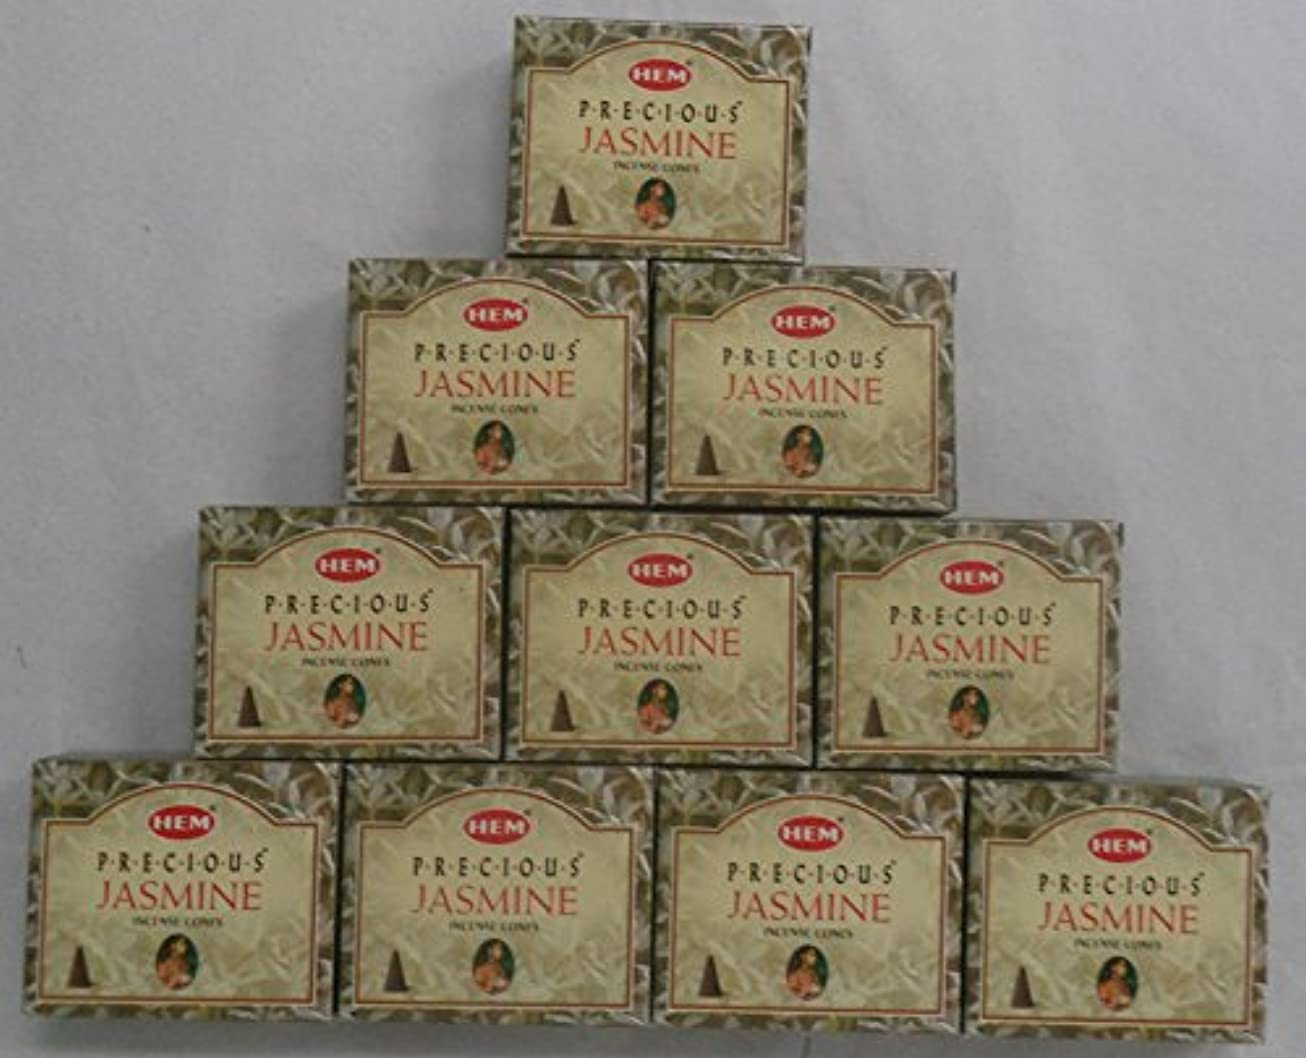 刺すヒギンズチャペルHEM Incense Cones: Precious Jasmine - 10 Packs of 10 = 100 Cones by Hem